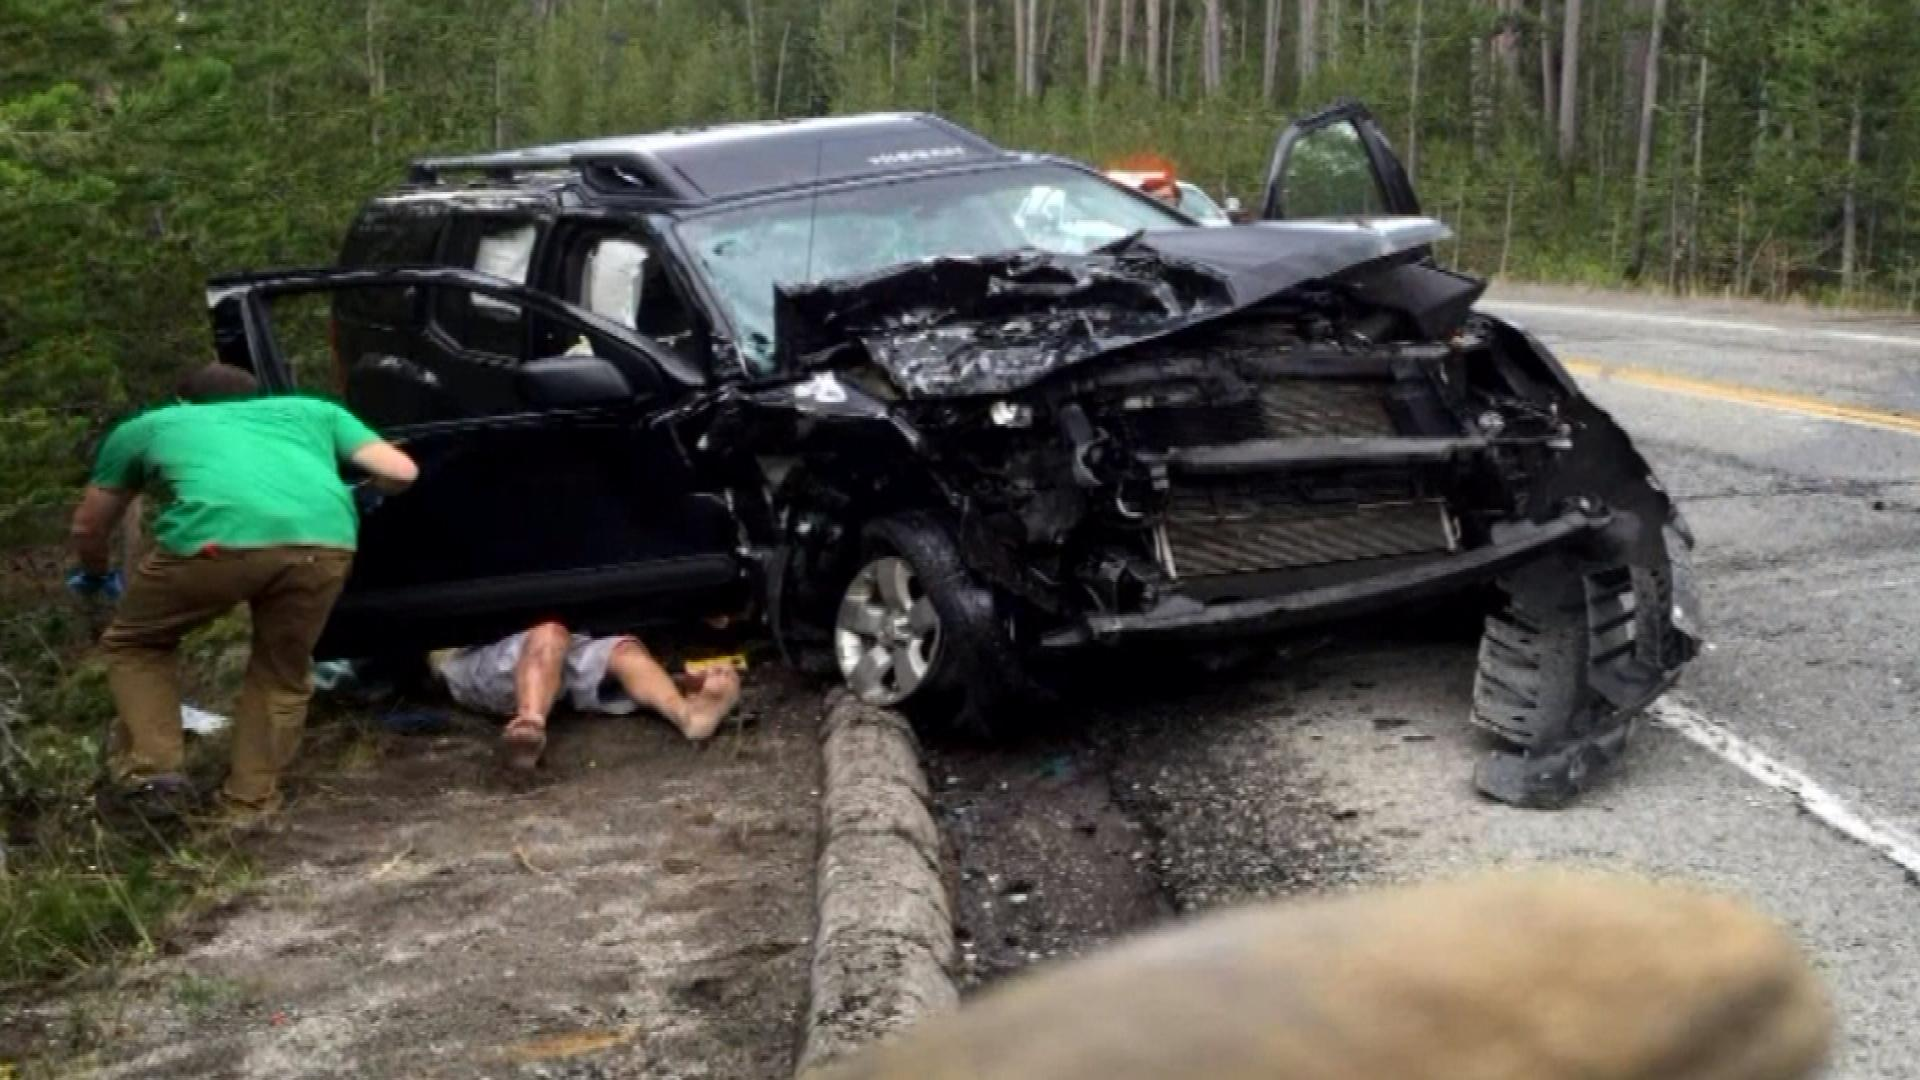 An image from the crash in Yellowstone National Park (credit: CBS)